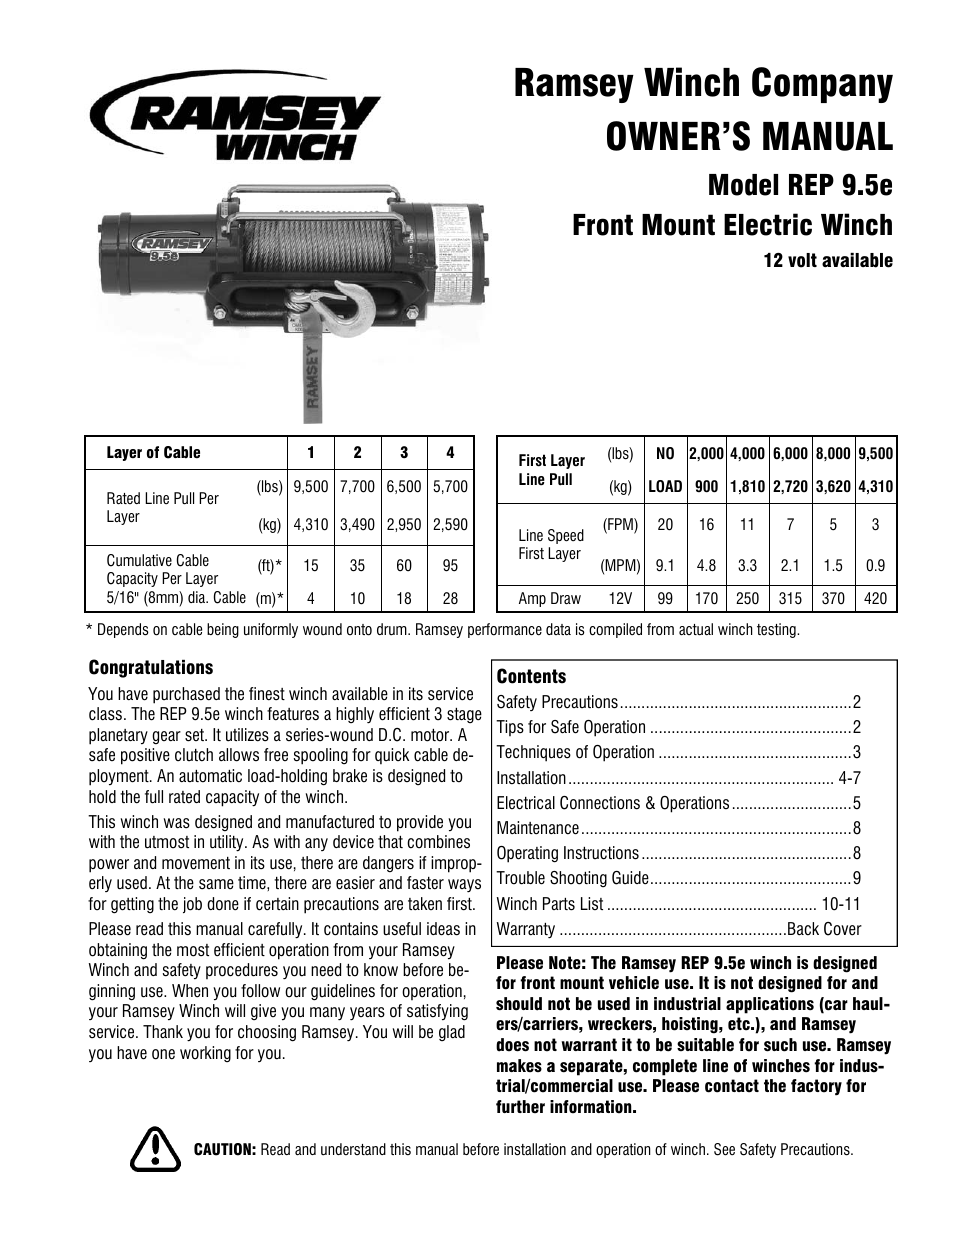 Ramsey Winch REP-9.5e User Manual | 12 pages on